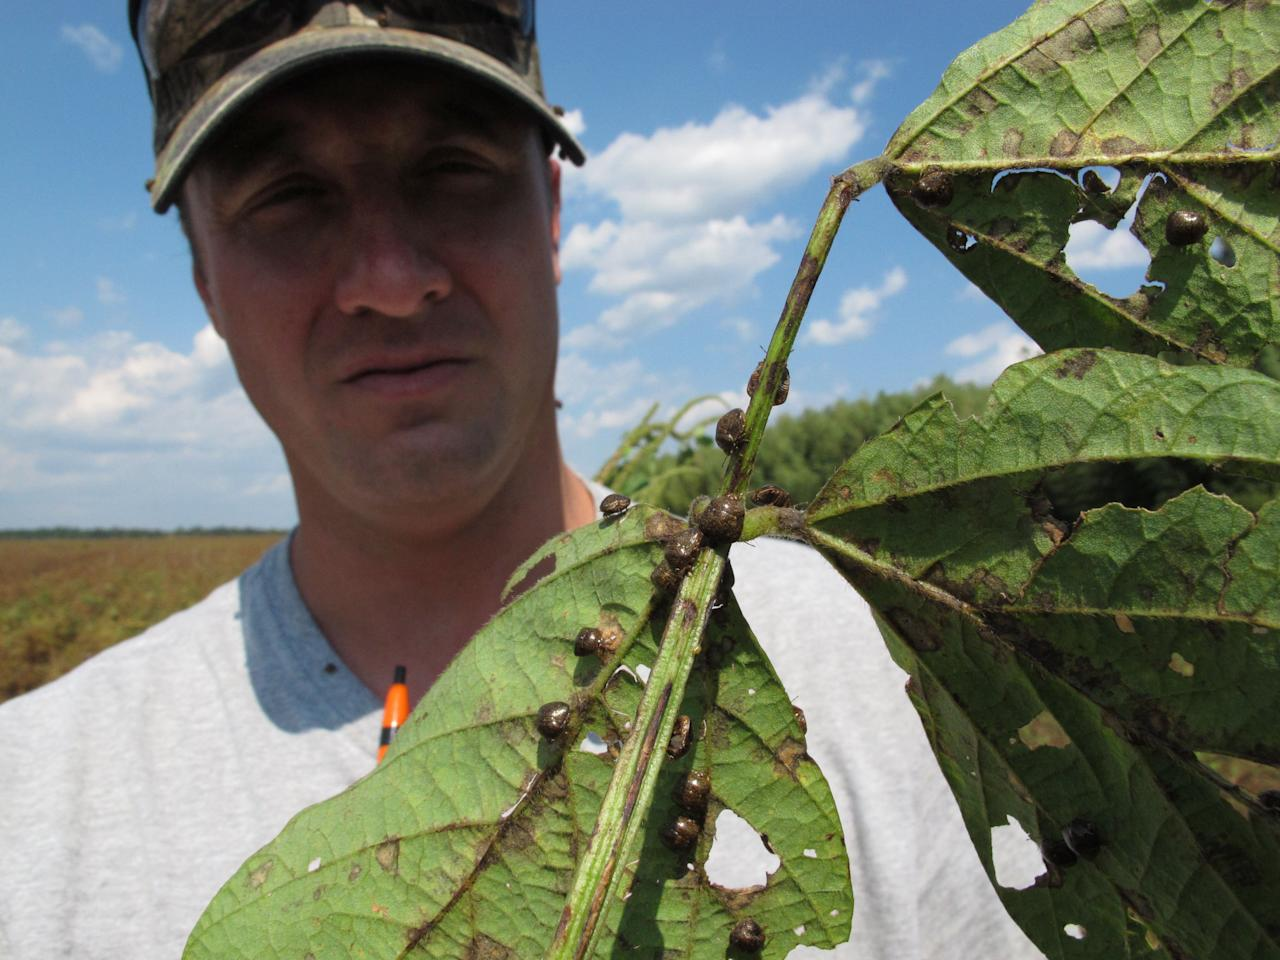 """In this Sept. 30, 2011 photo, Clemson University entomologist Jeremy Greene shows a soybean plant from a test plot in Blackville, S.C. The plant is covered in """"kudzu bugs,"""" an Asian pest that is wreaking havoc on U.S. soybean crops. (AP Photo/Allen Breed)"""